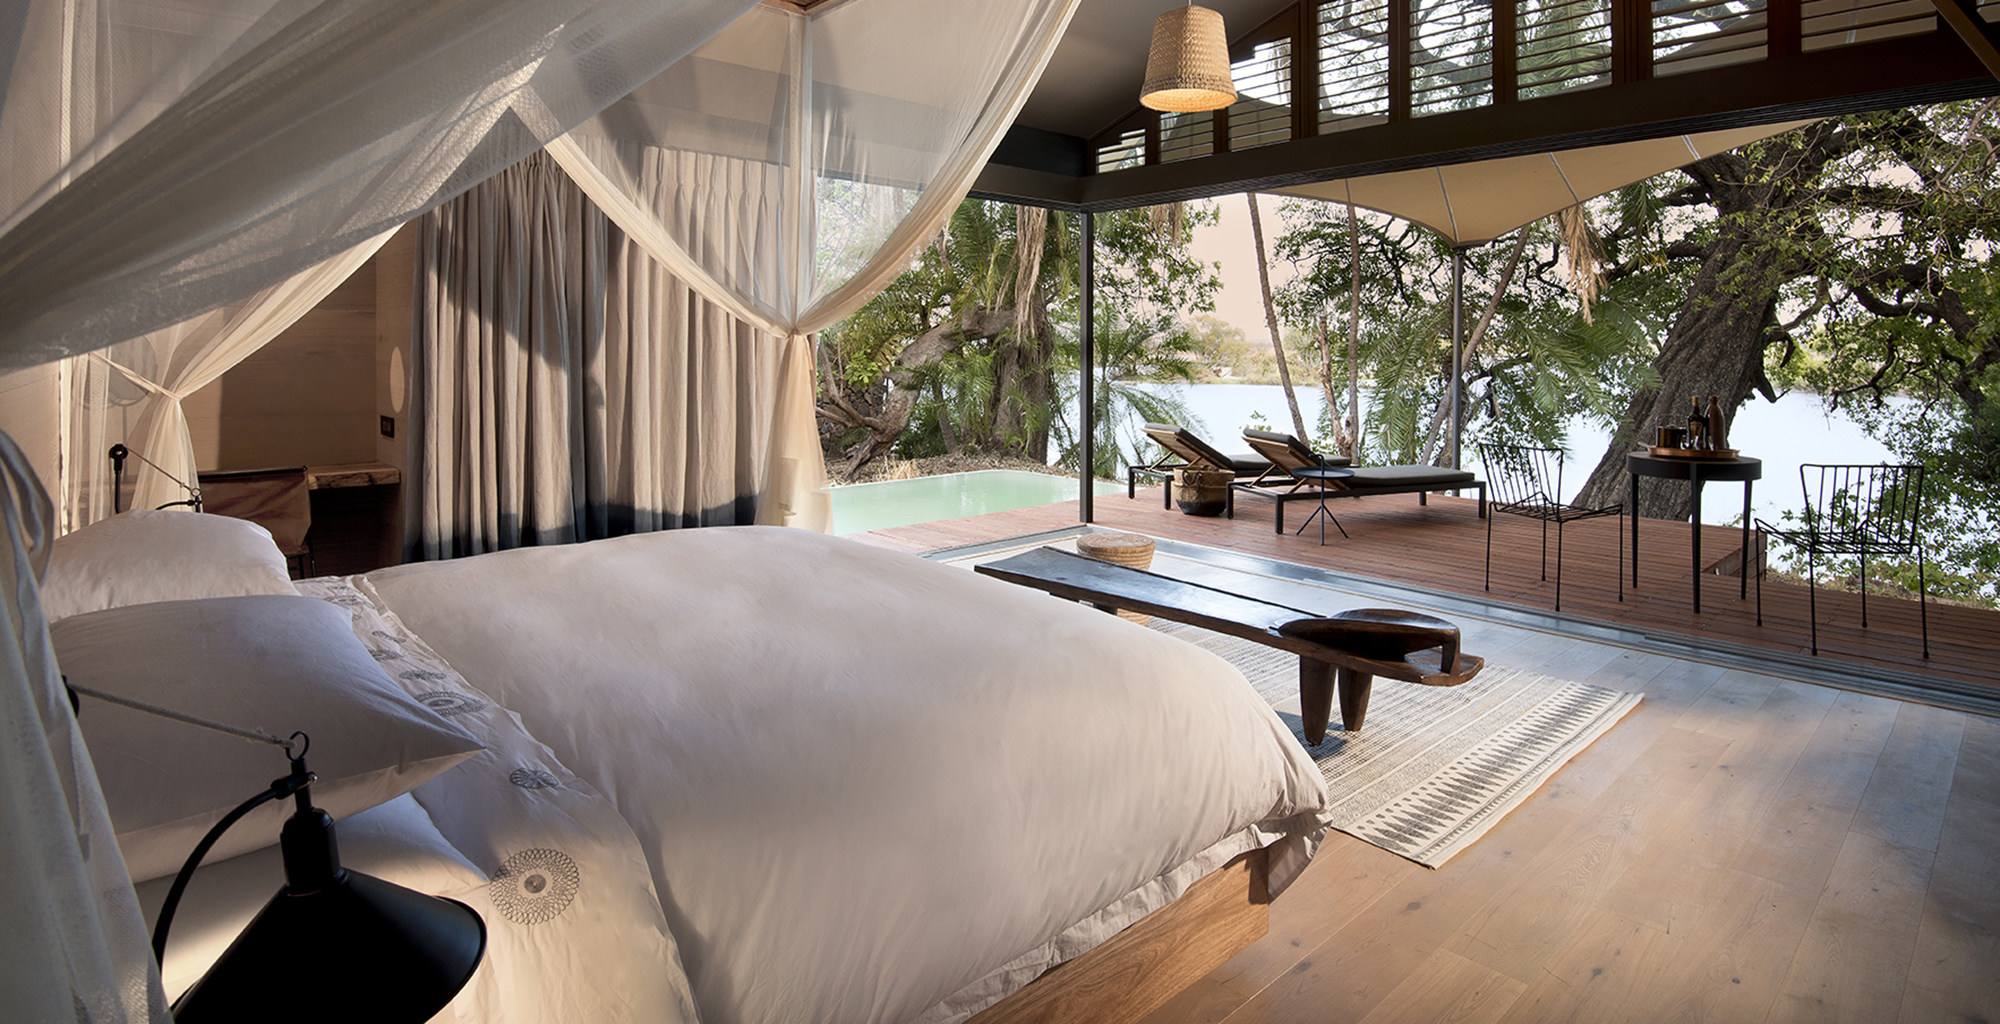 Zambia-Thorntree-River-Lodge-Bedroom